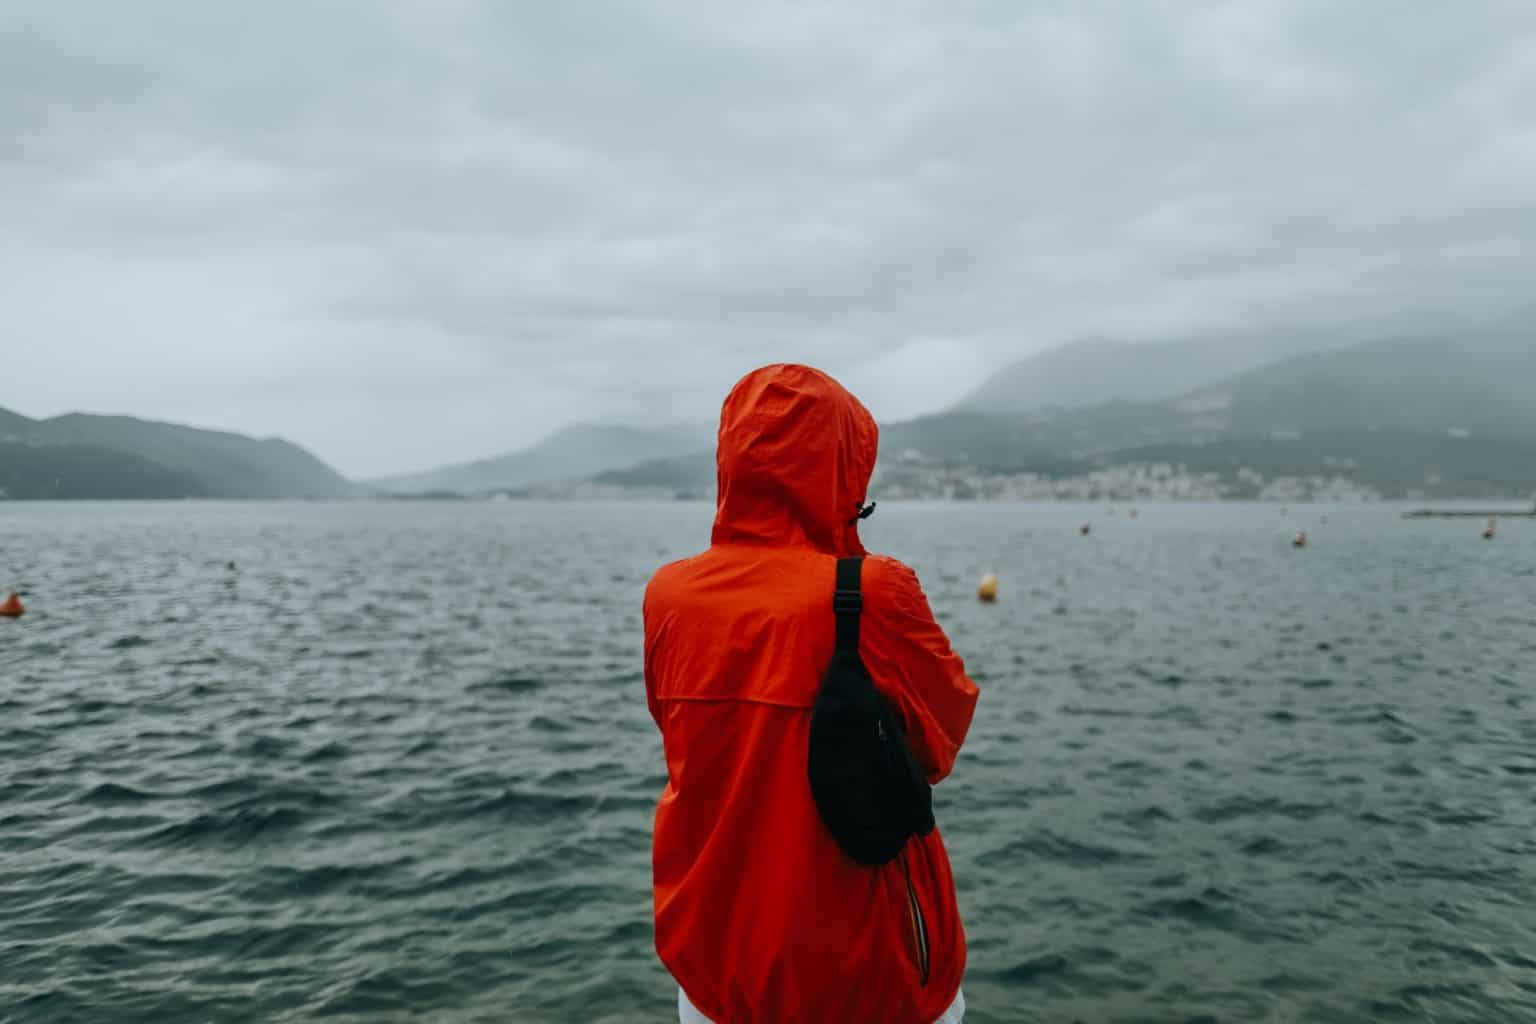 person standing by a lake wearing a red windbreaker